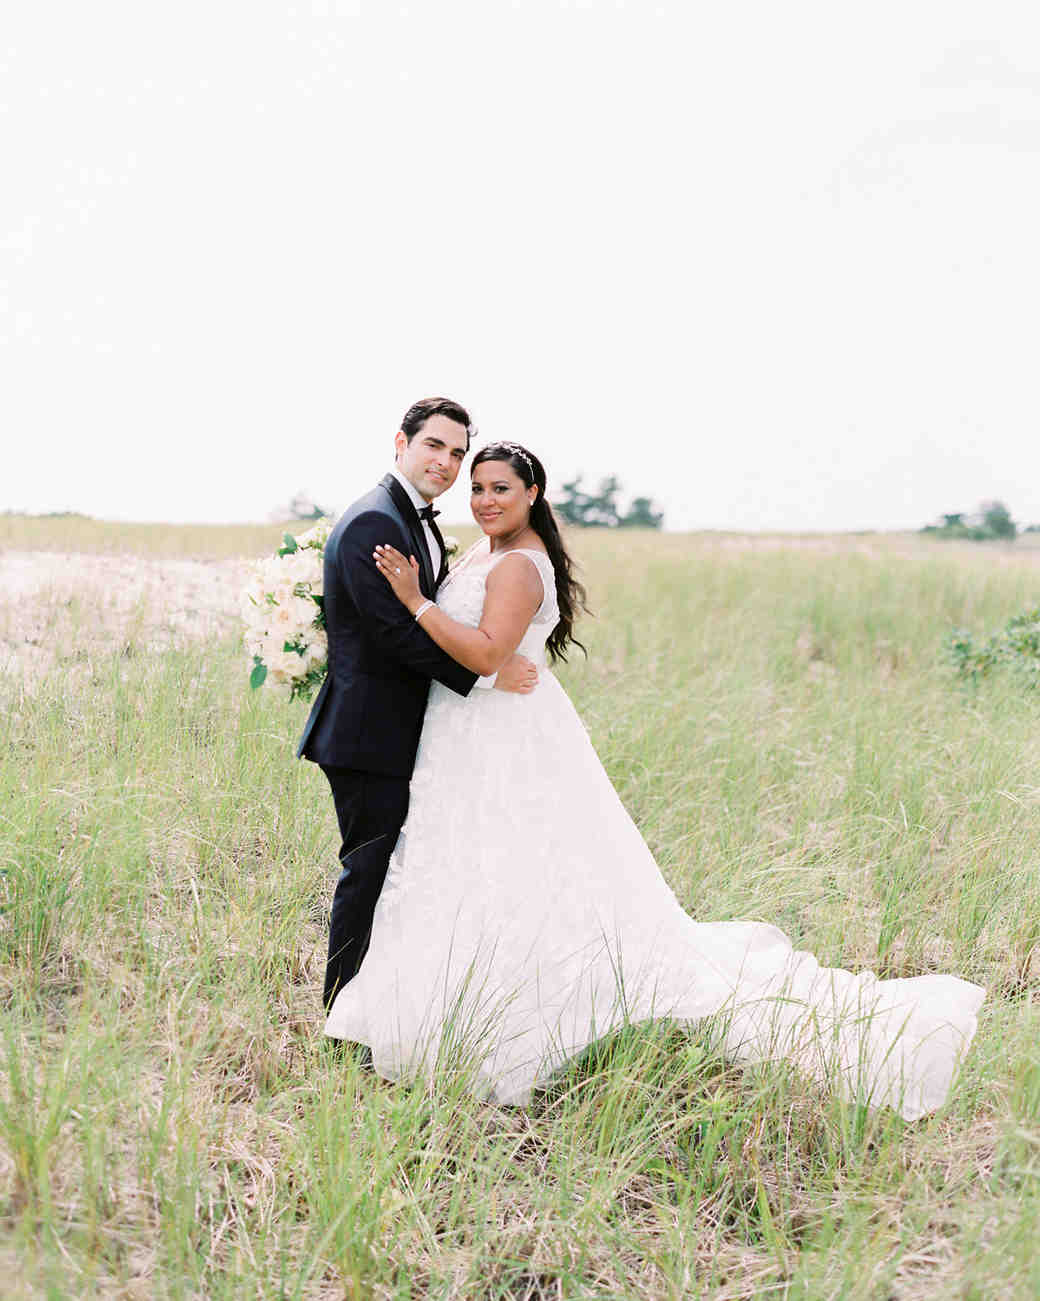 bride and groom posing in field of tall grass